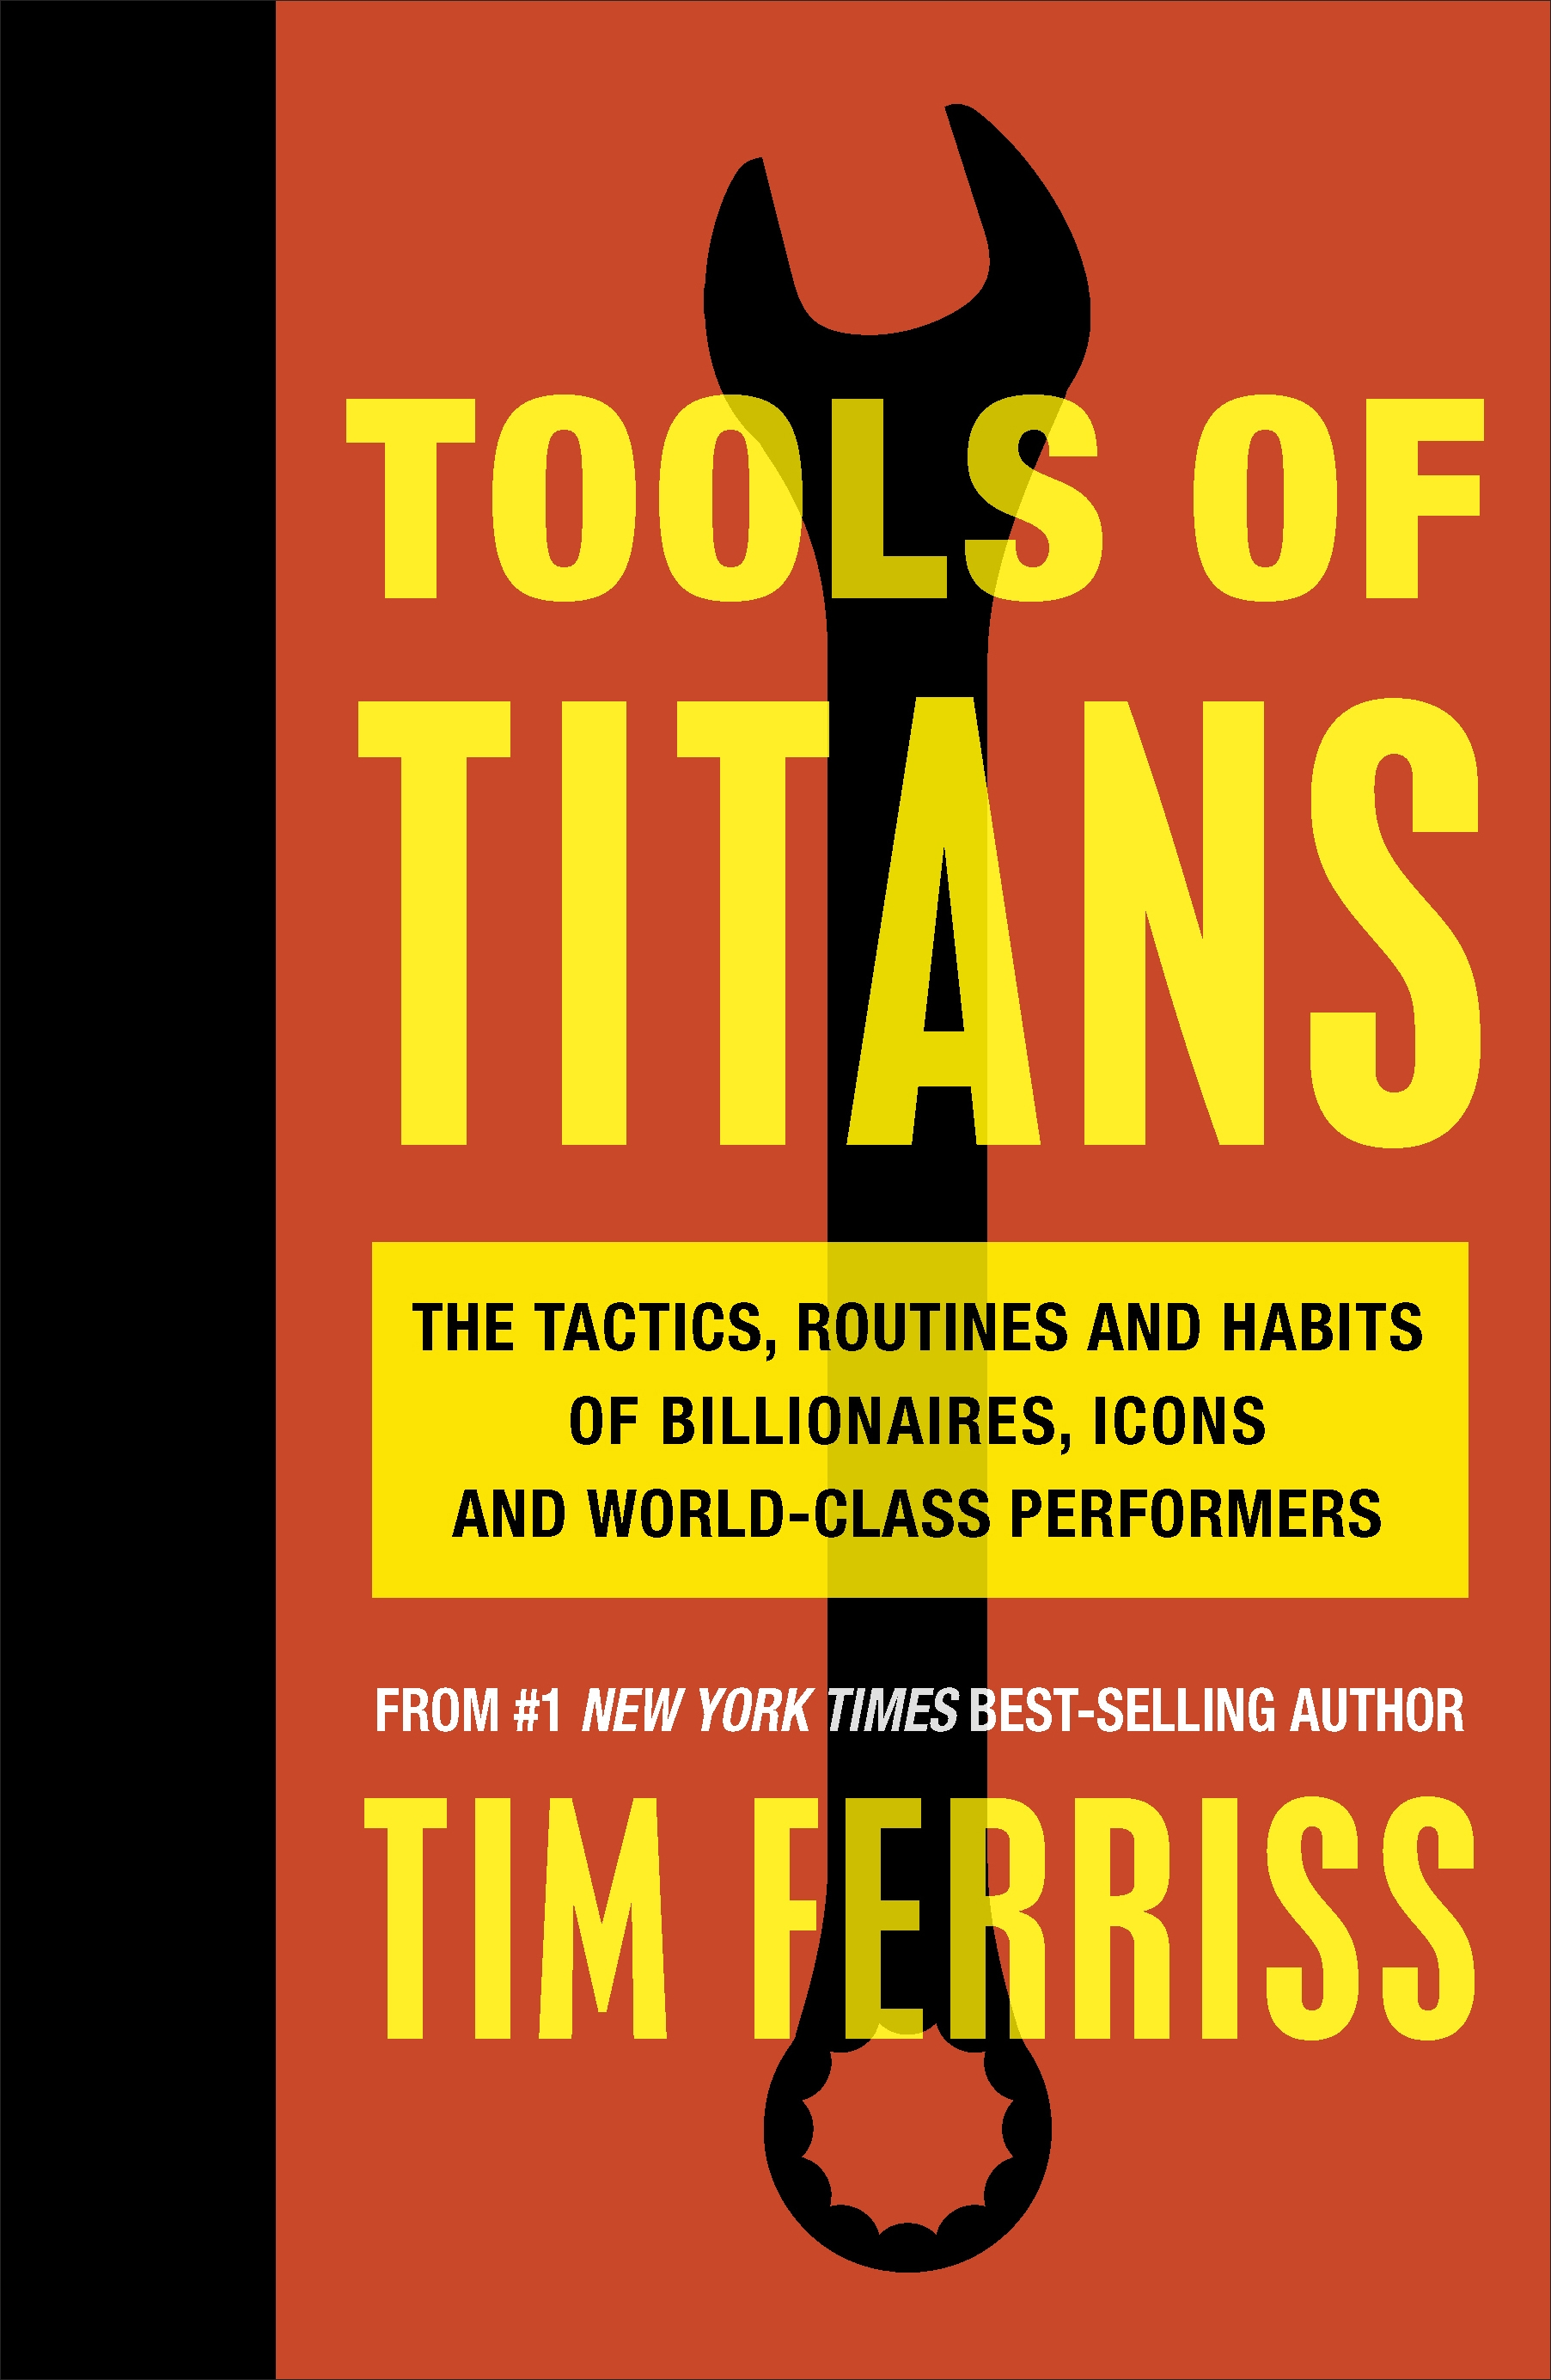 Tools of Titans: The Tactics, Routines, and Habits of Billionaires, Icons, and World-Class Performers by Timothy Ferriss, ISBN: 9781785041273